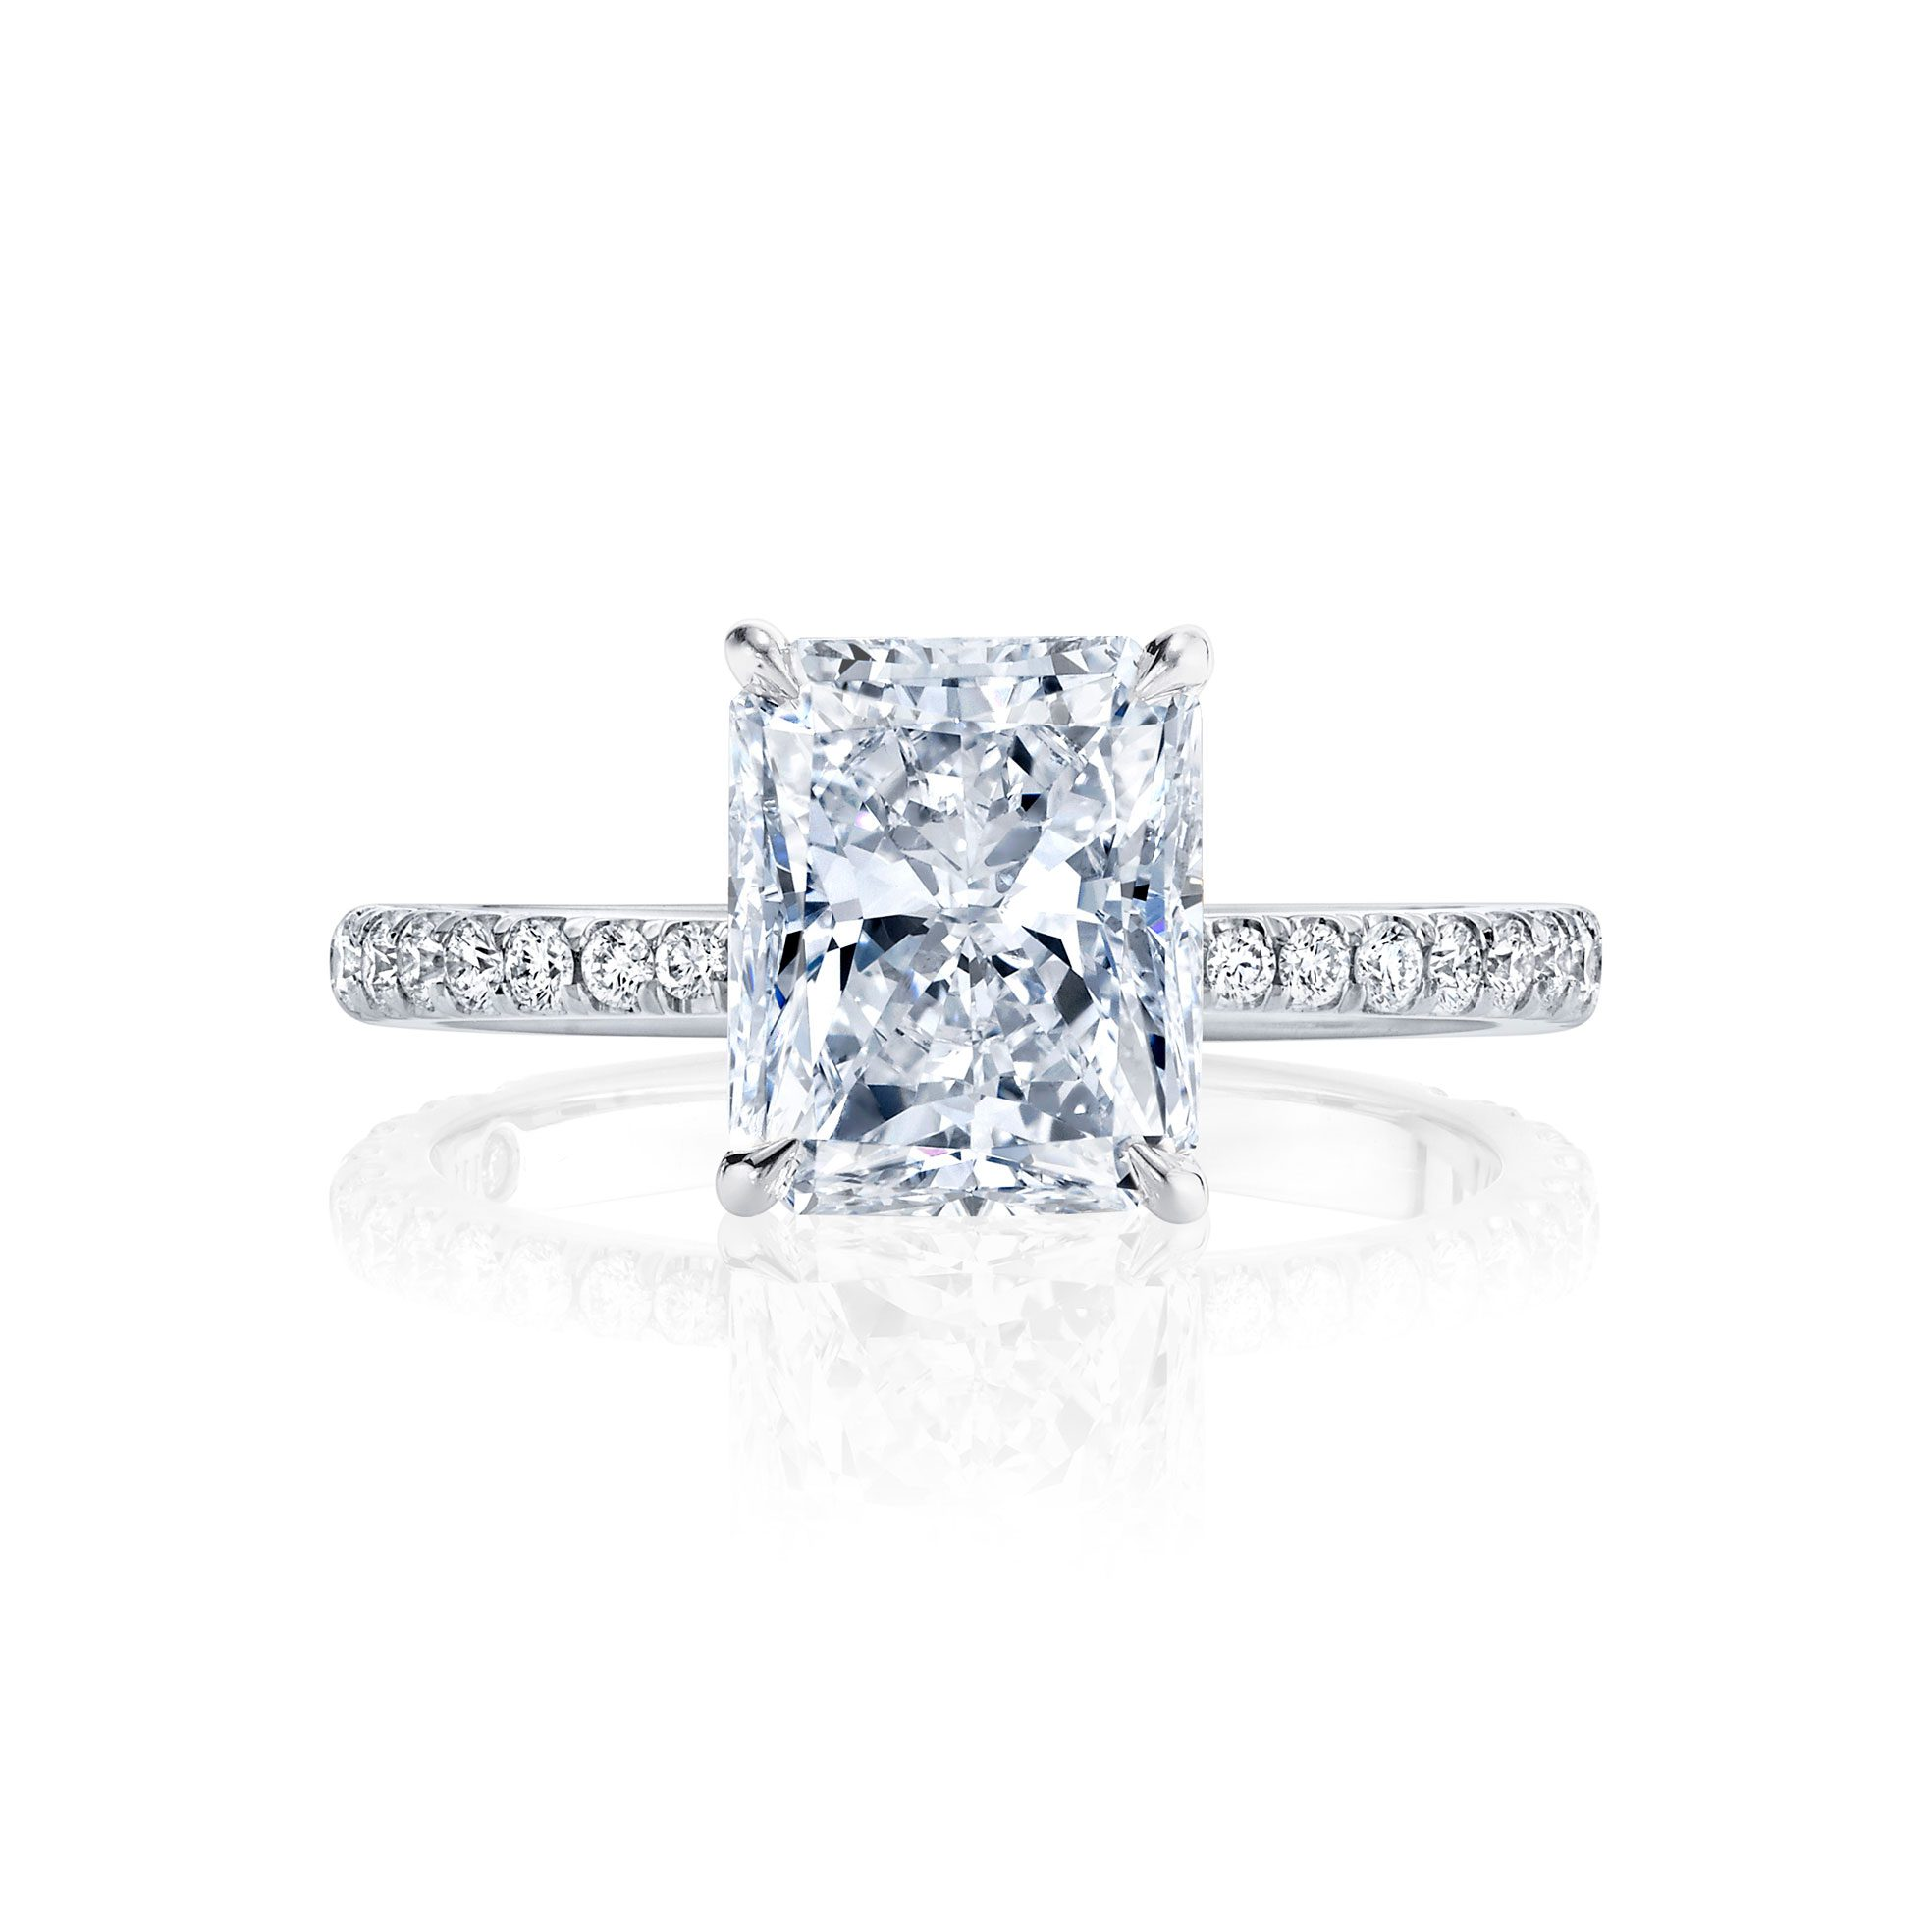 Eloise Solitaire Cushion Cut Lab Diamond Engagement Ring with Pavé Band in 18k White Gold